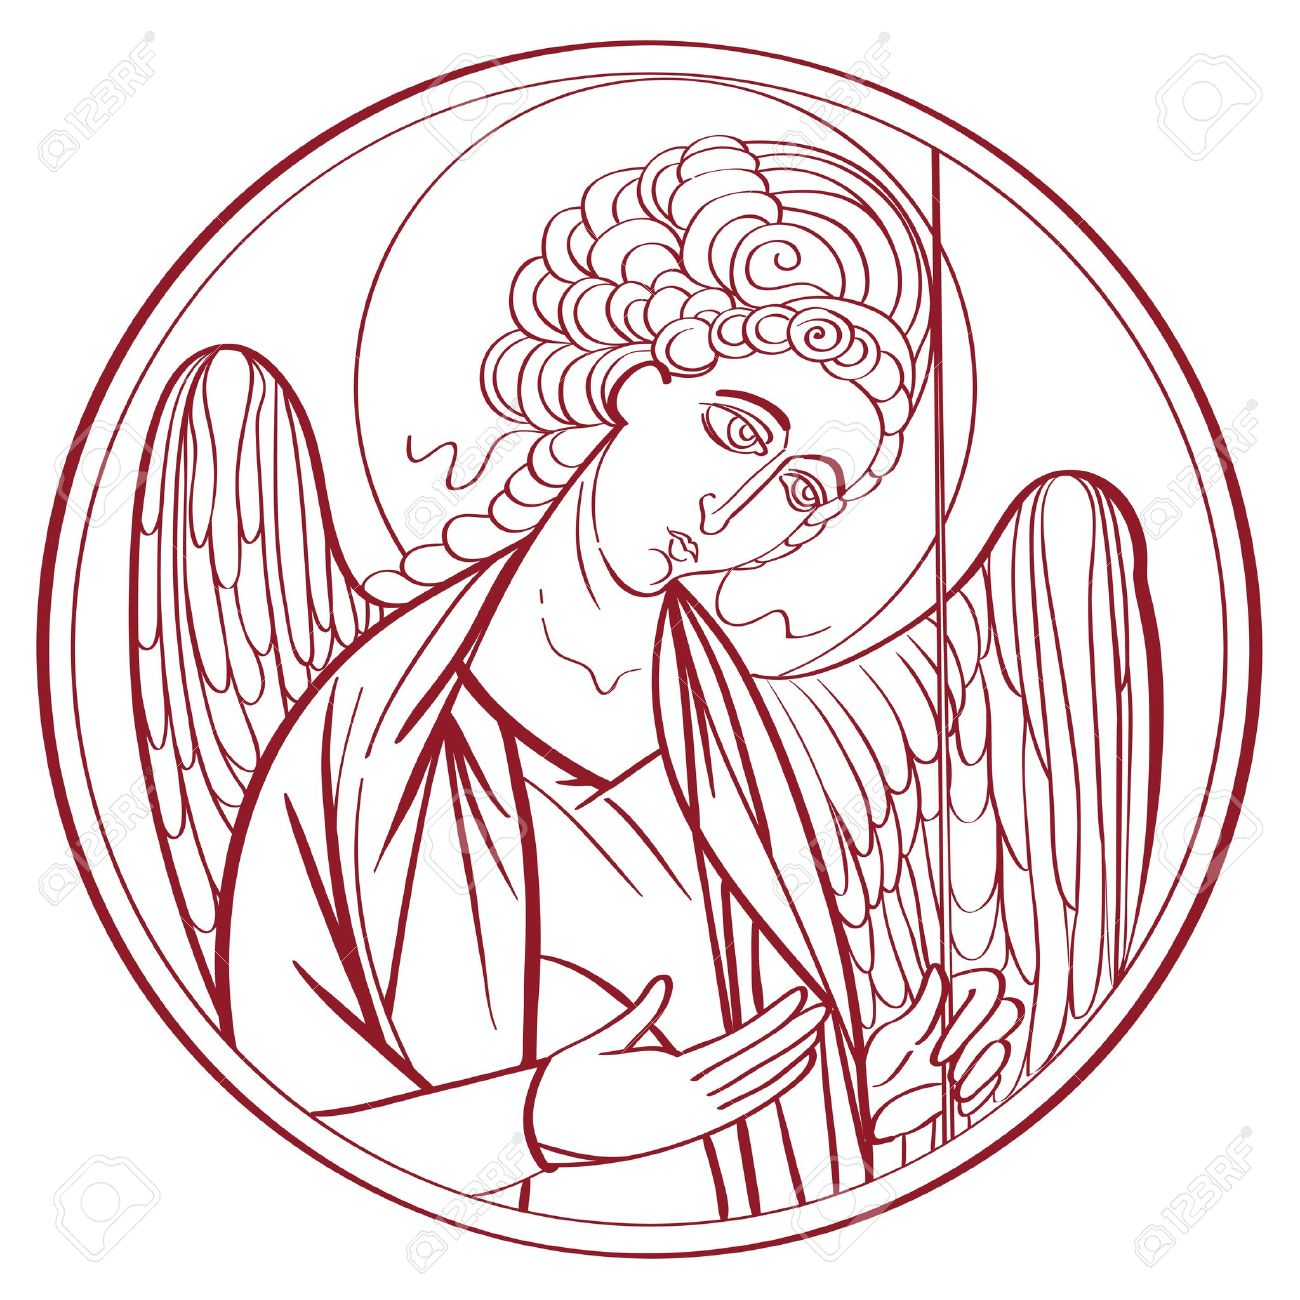 1300x1300 Archangel Outline Drawing, Hand Drawn Illustration Of An Orthodox